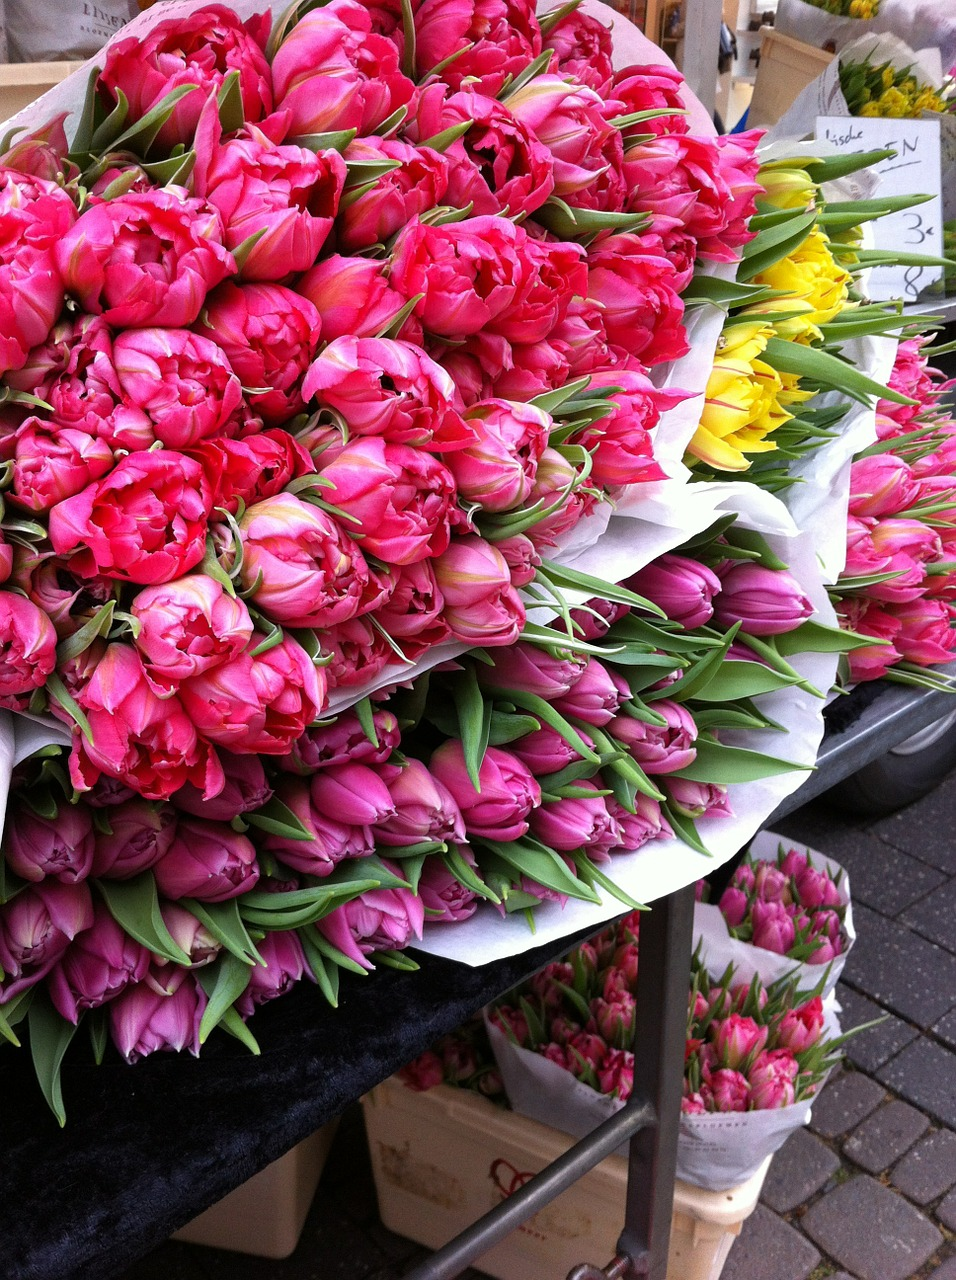 Flower Market of Amsterdam